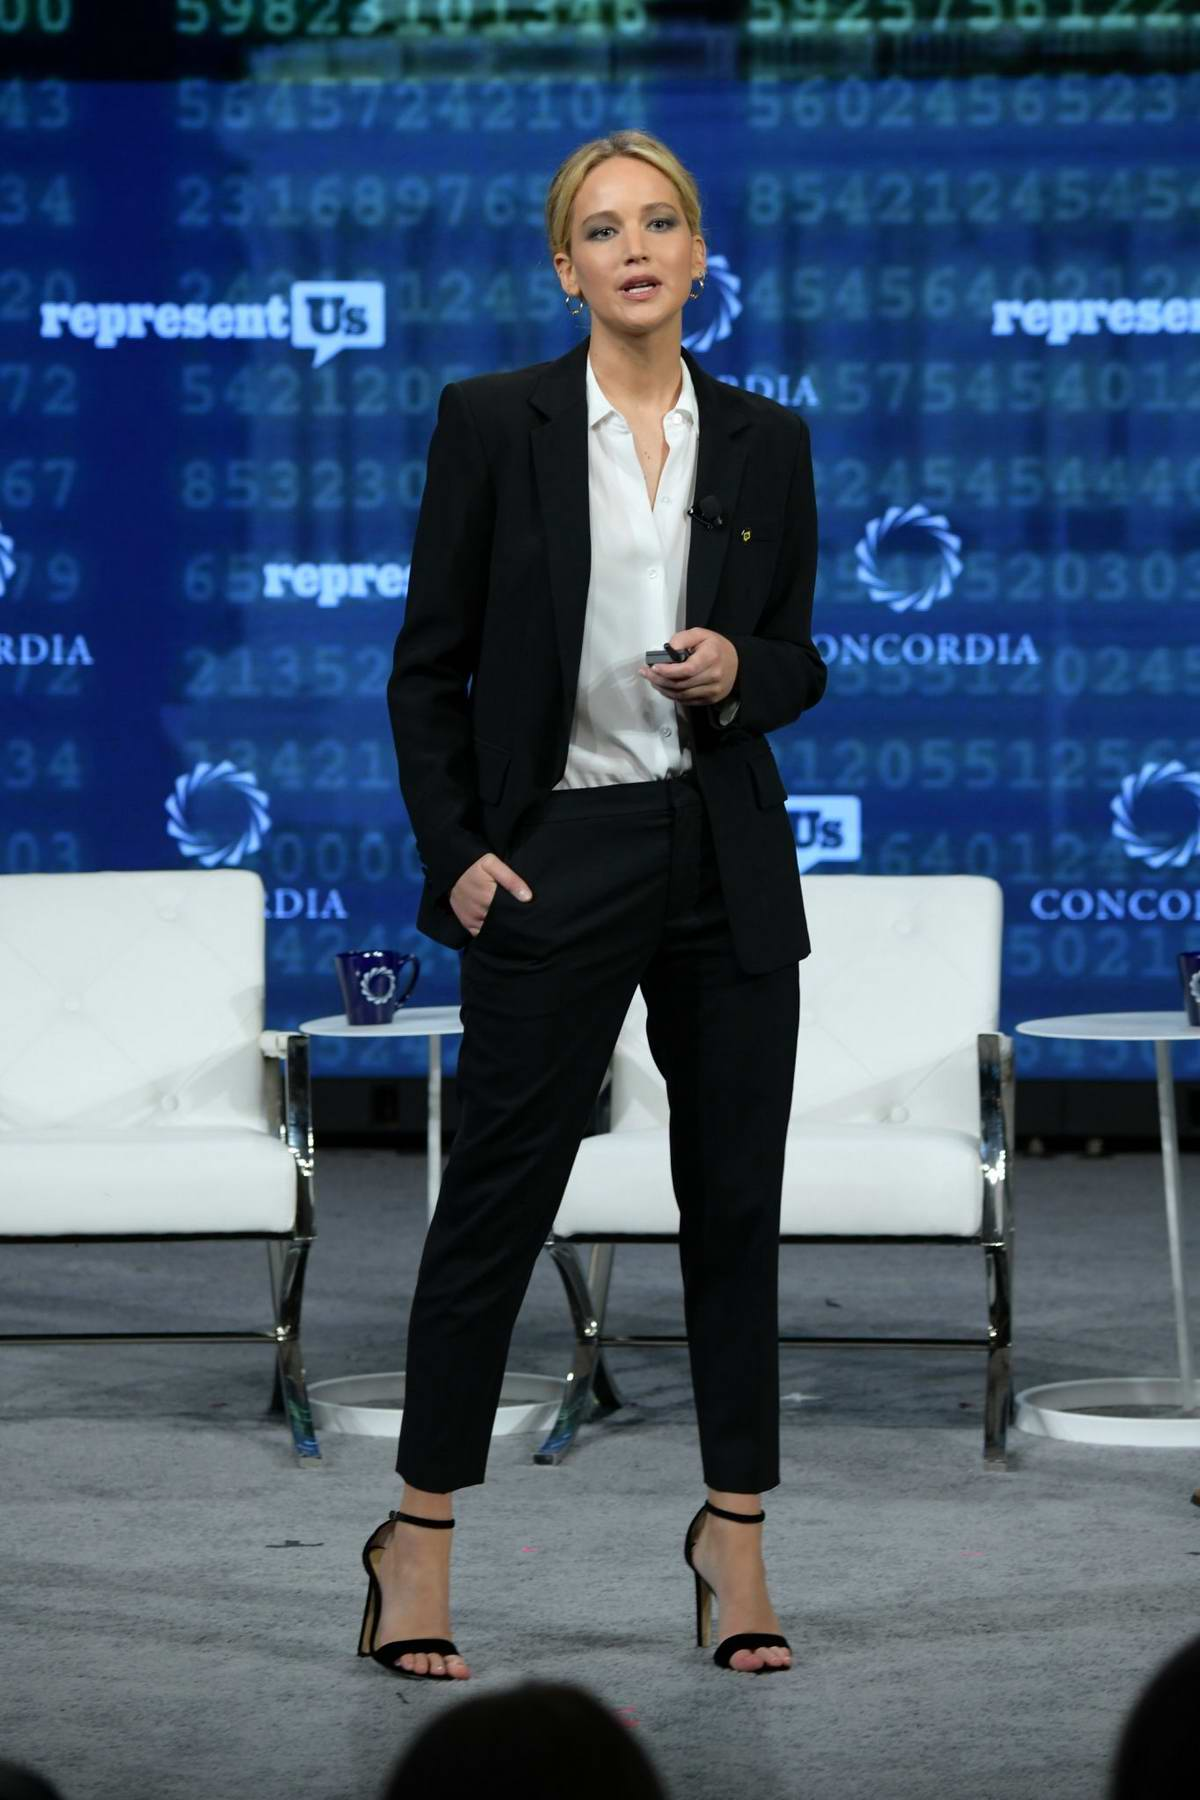 Jennifer Lawrence speaks onstage during the 2018 Concordia Annual Summit, Day 2 in New York City